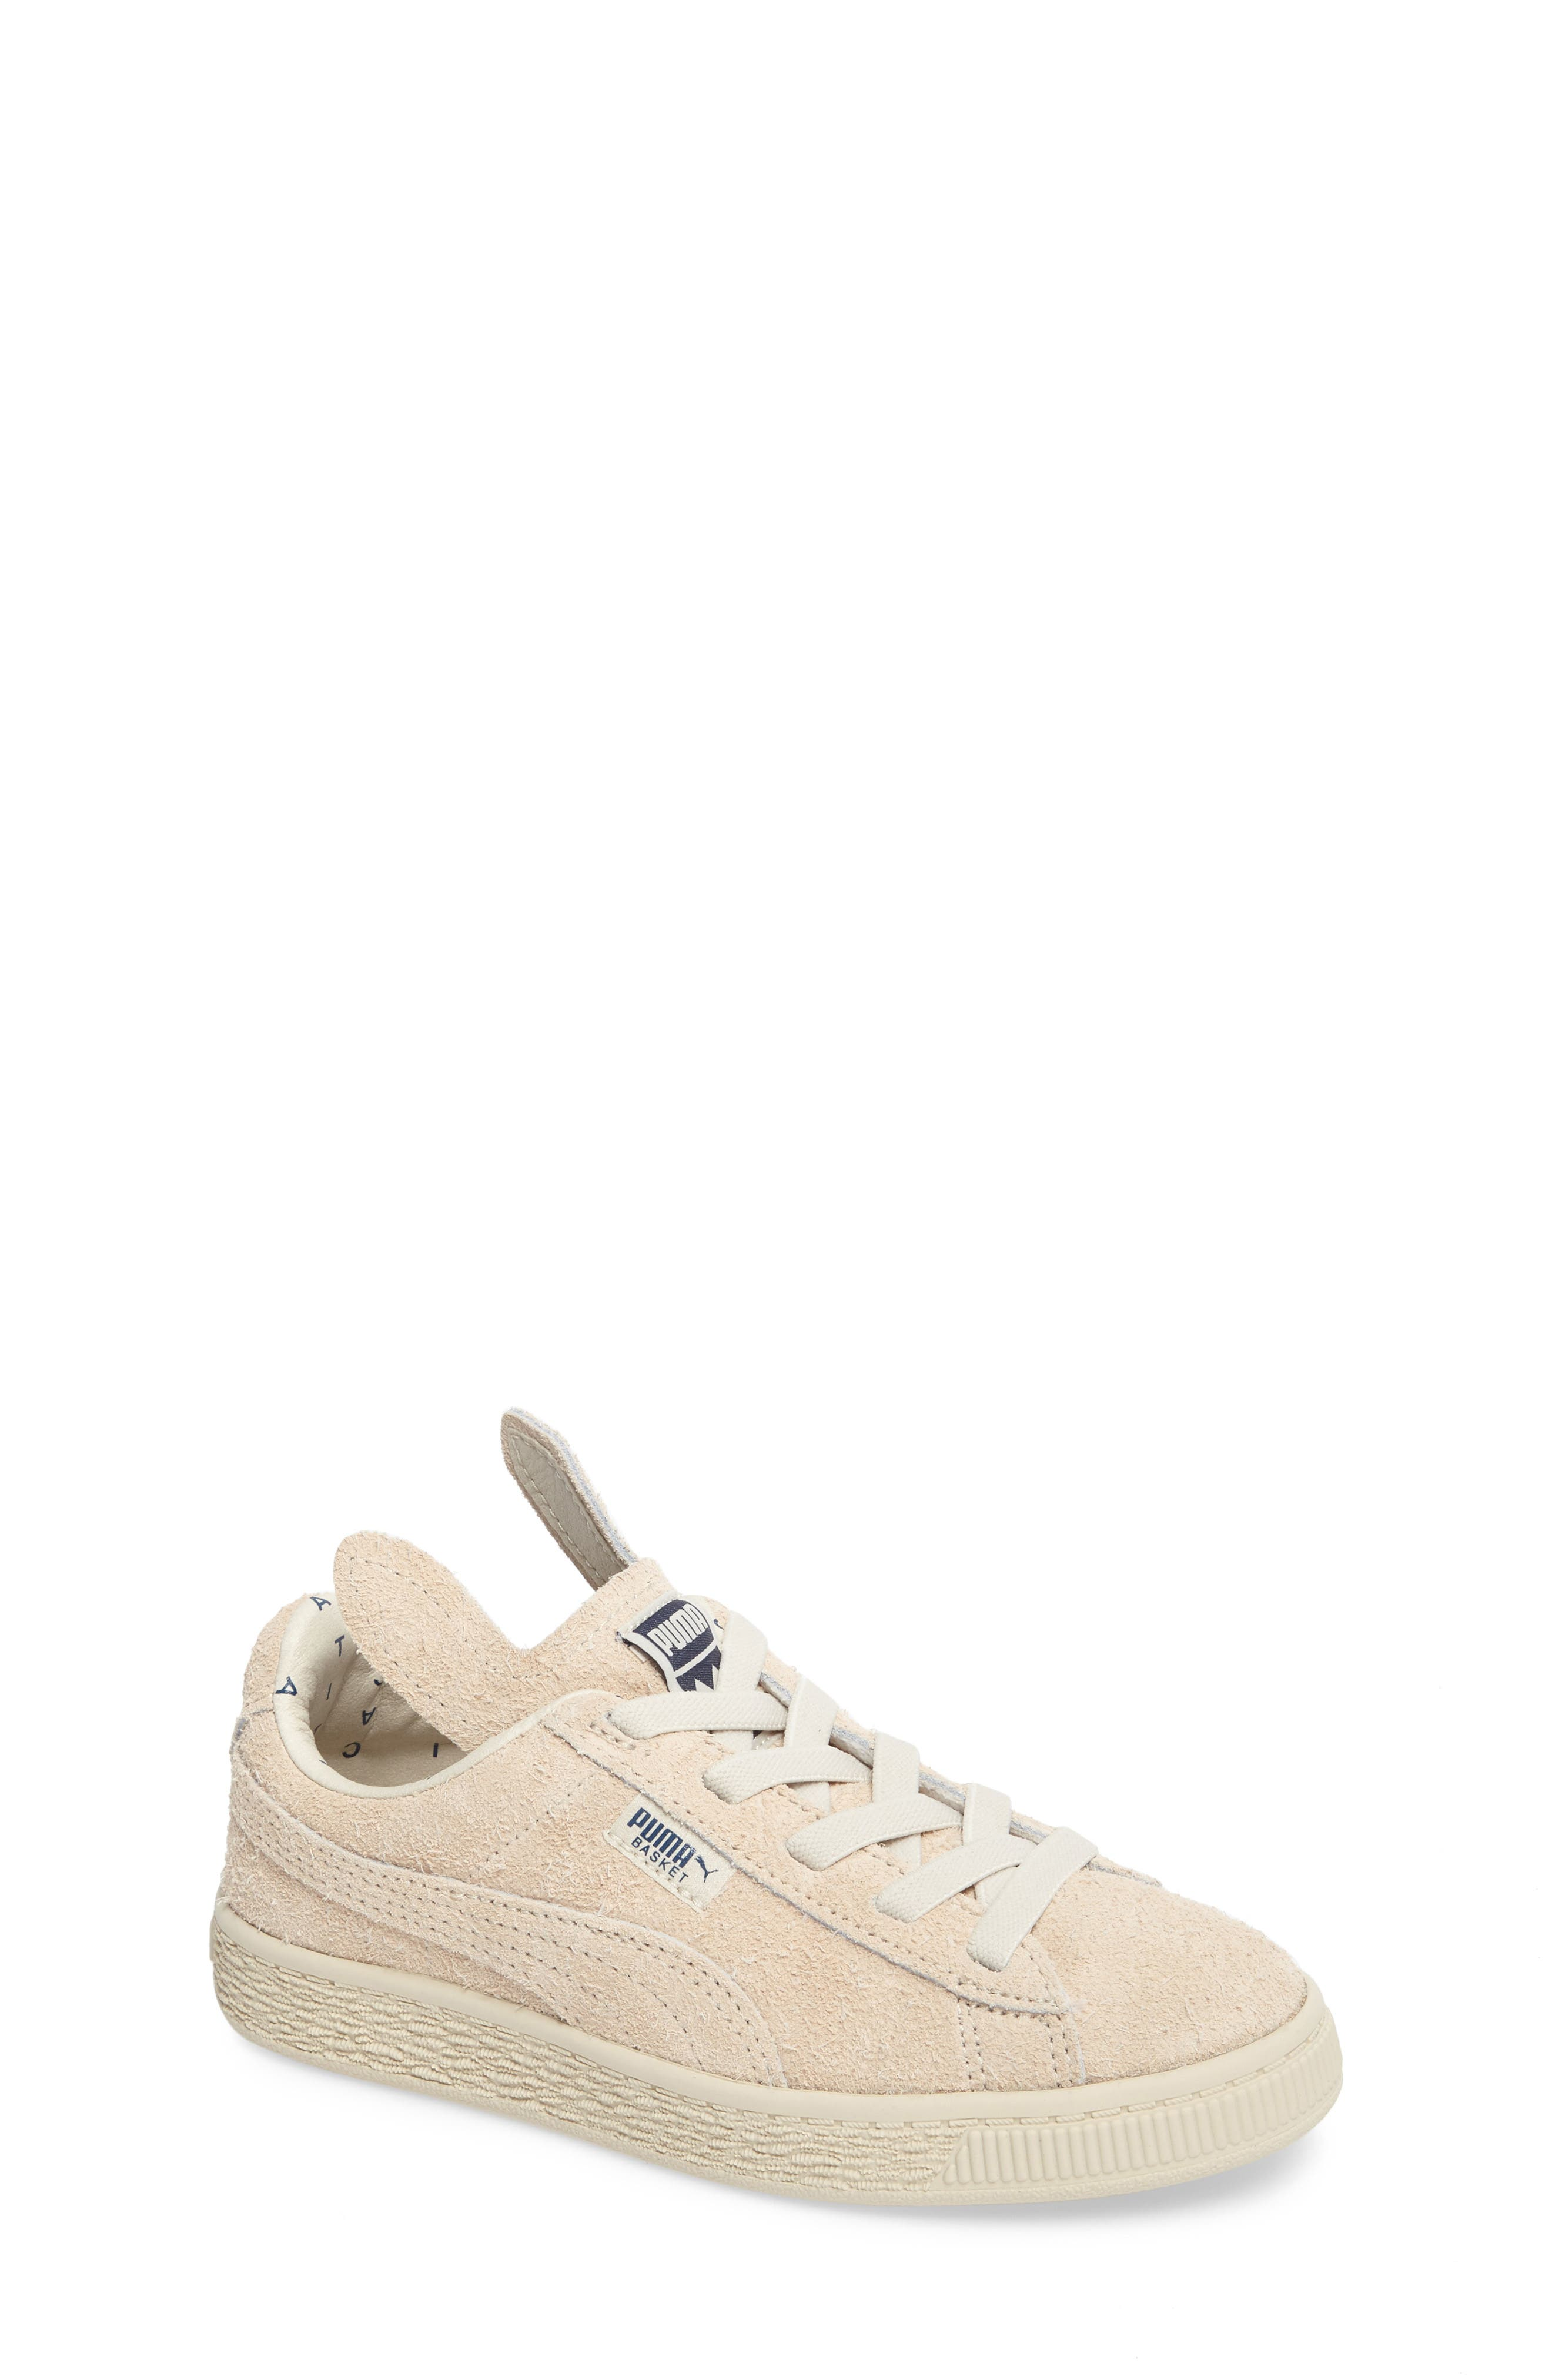 x tinycottons Basket Furry Sneaker,                         Main,                         color, 250